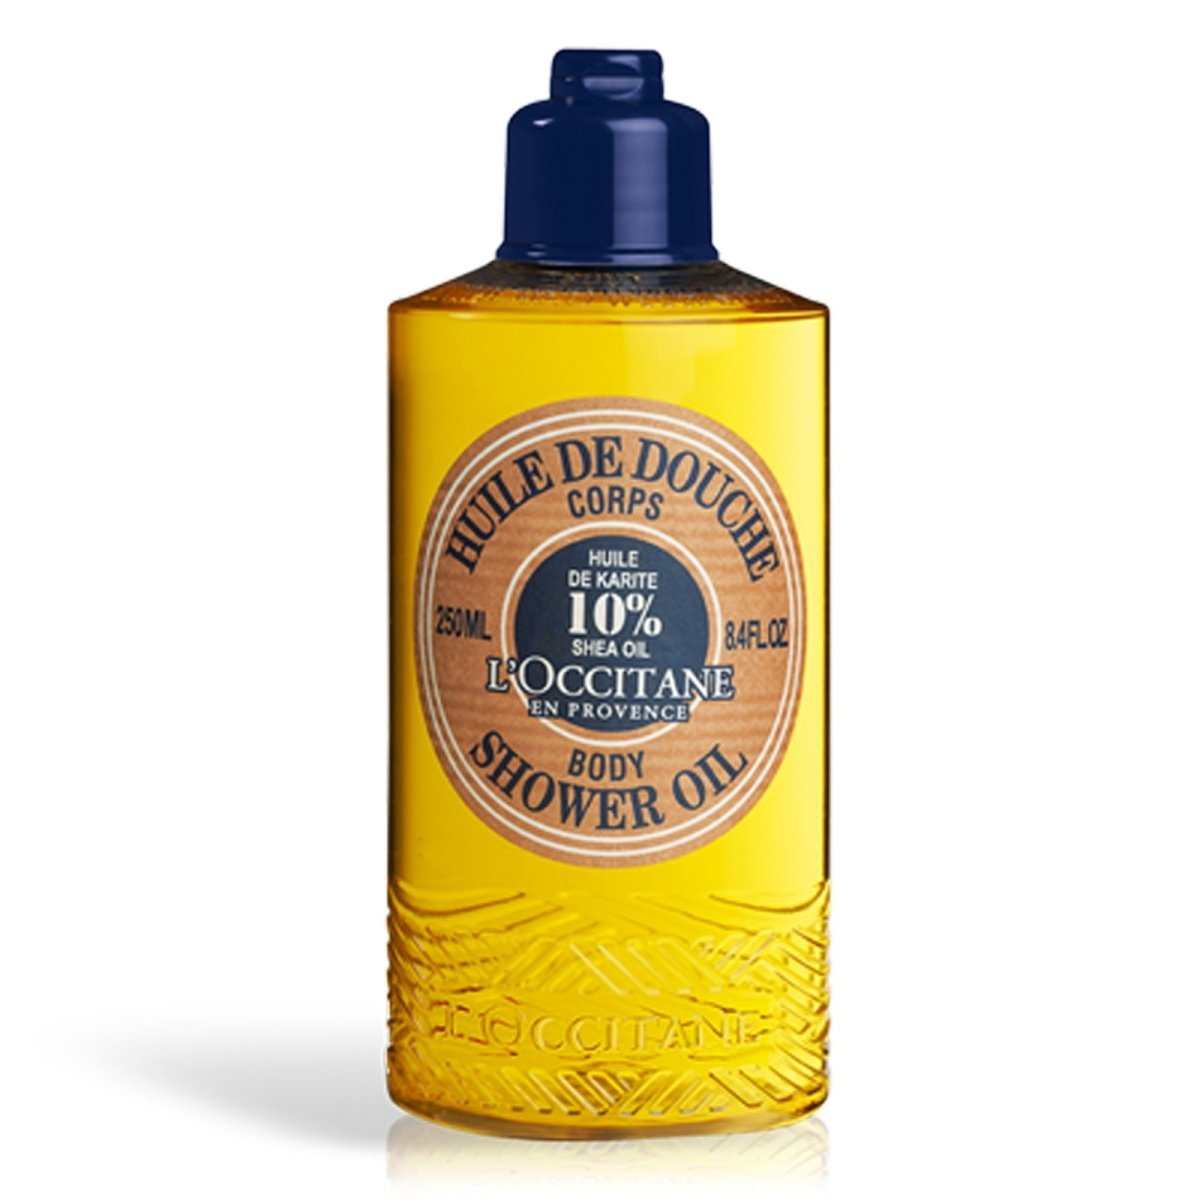 Shea Shower Oil 250ml - RUTHERFORD & Co